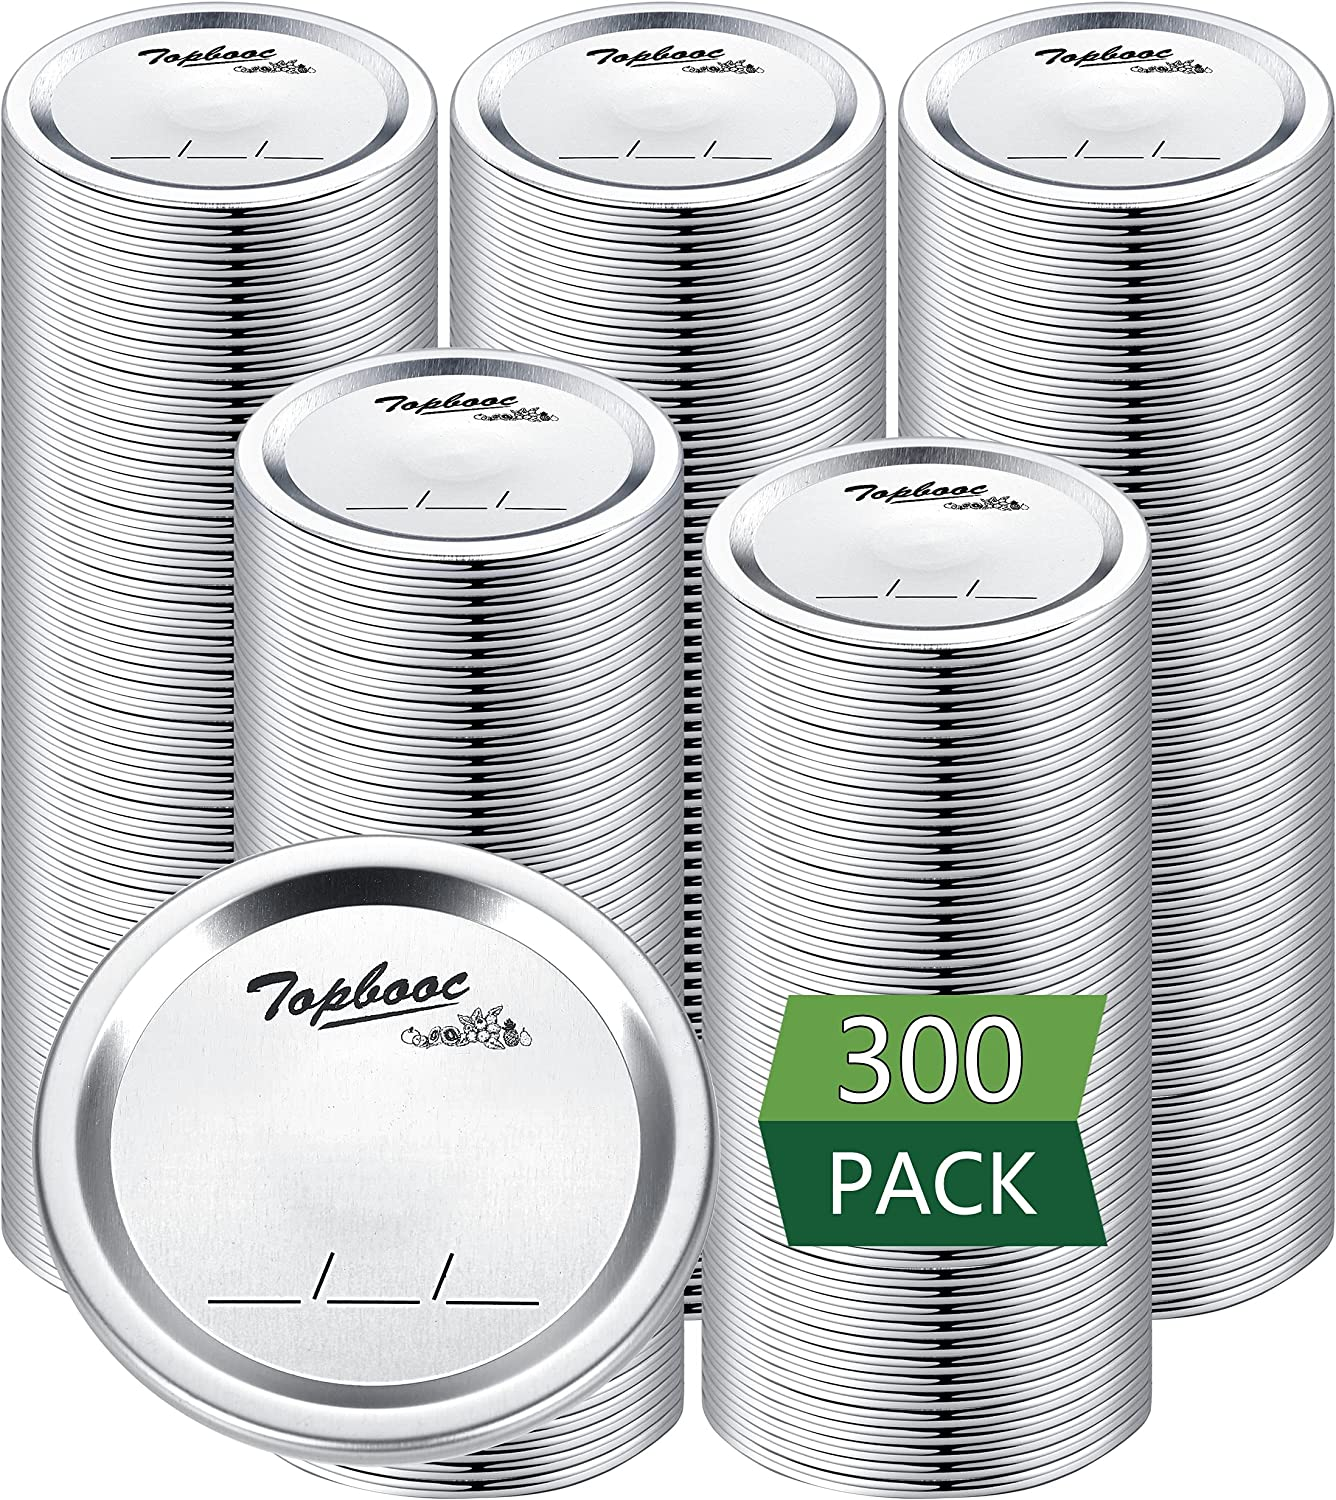 300-Count,Regular Mouth Canning Lids for Ball, Kerr Jars - Split-Type Metal Mason Jar Lids for Canning - Food Grade Material, 100% Fit & Airtight for Regular Mouth Jars